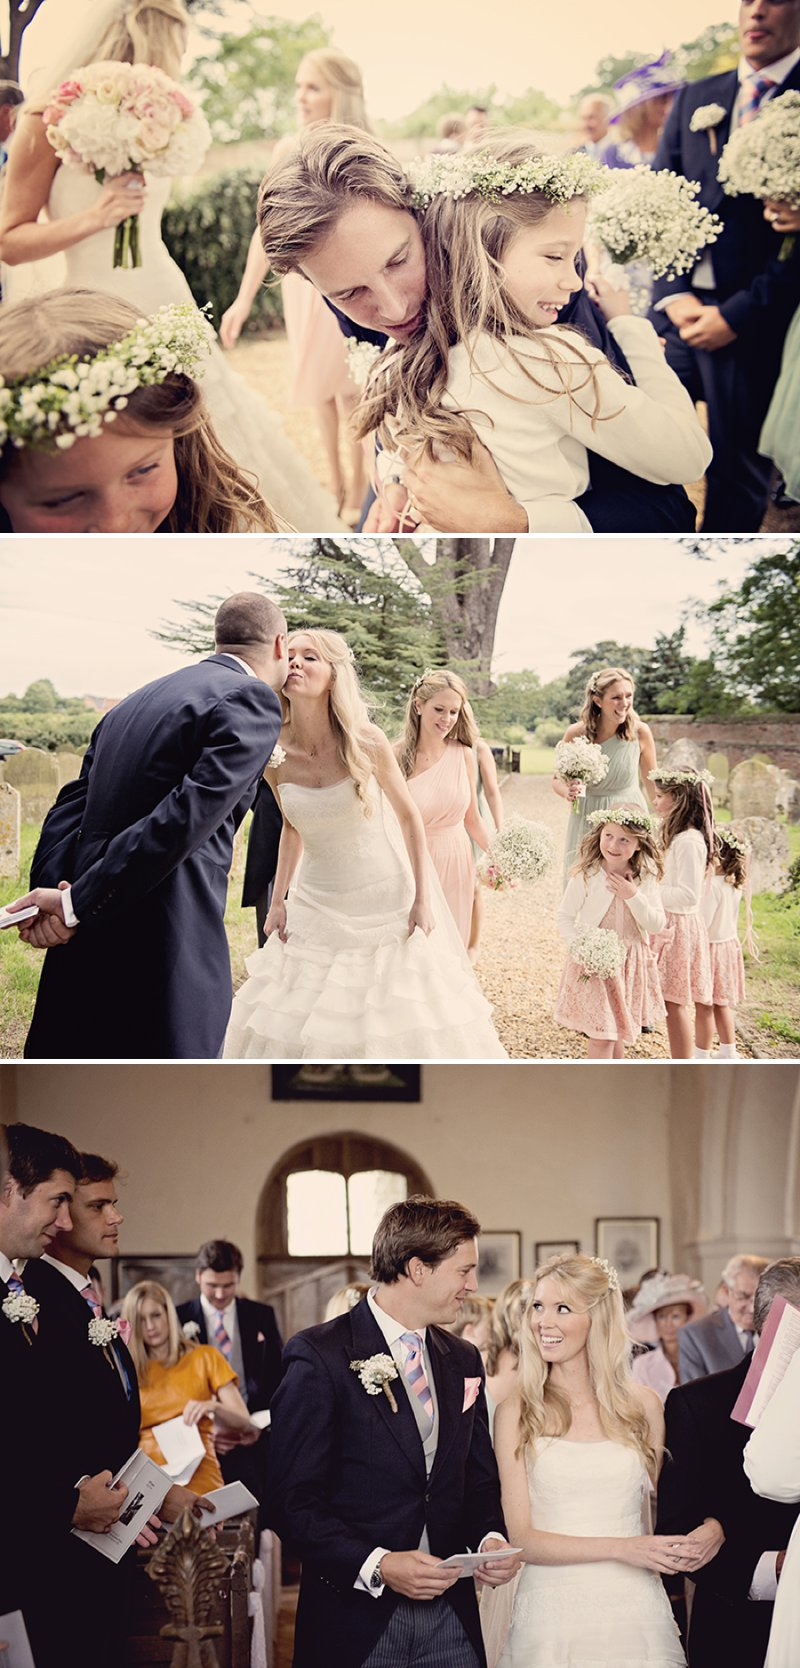 Contemporary Marquee Wedding With A Soft And Romantic Pastel Colour Scheme With Bride In Essense Of Australia Gown And Groom In Tails With Anges De Sucres Macarons And Images By Razia N Jukes Photography 4